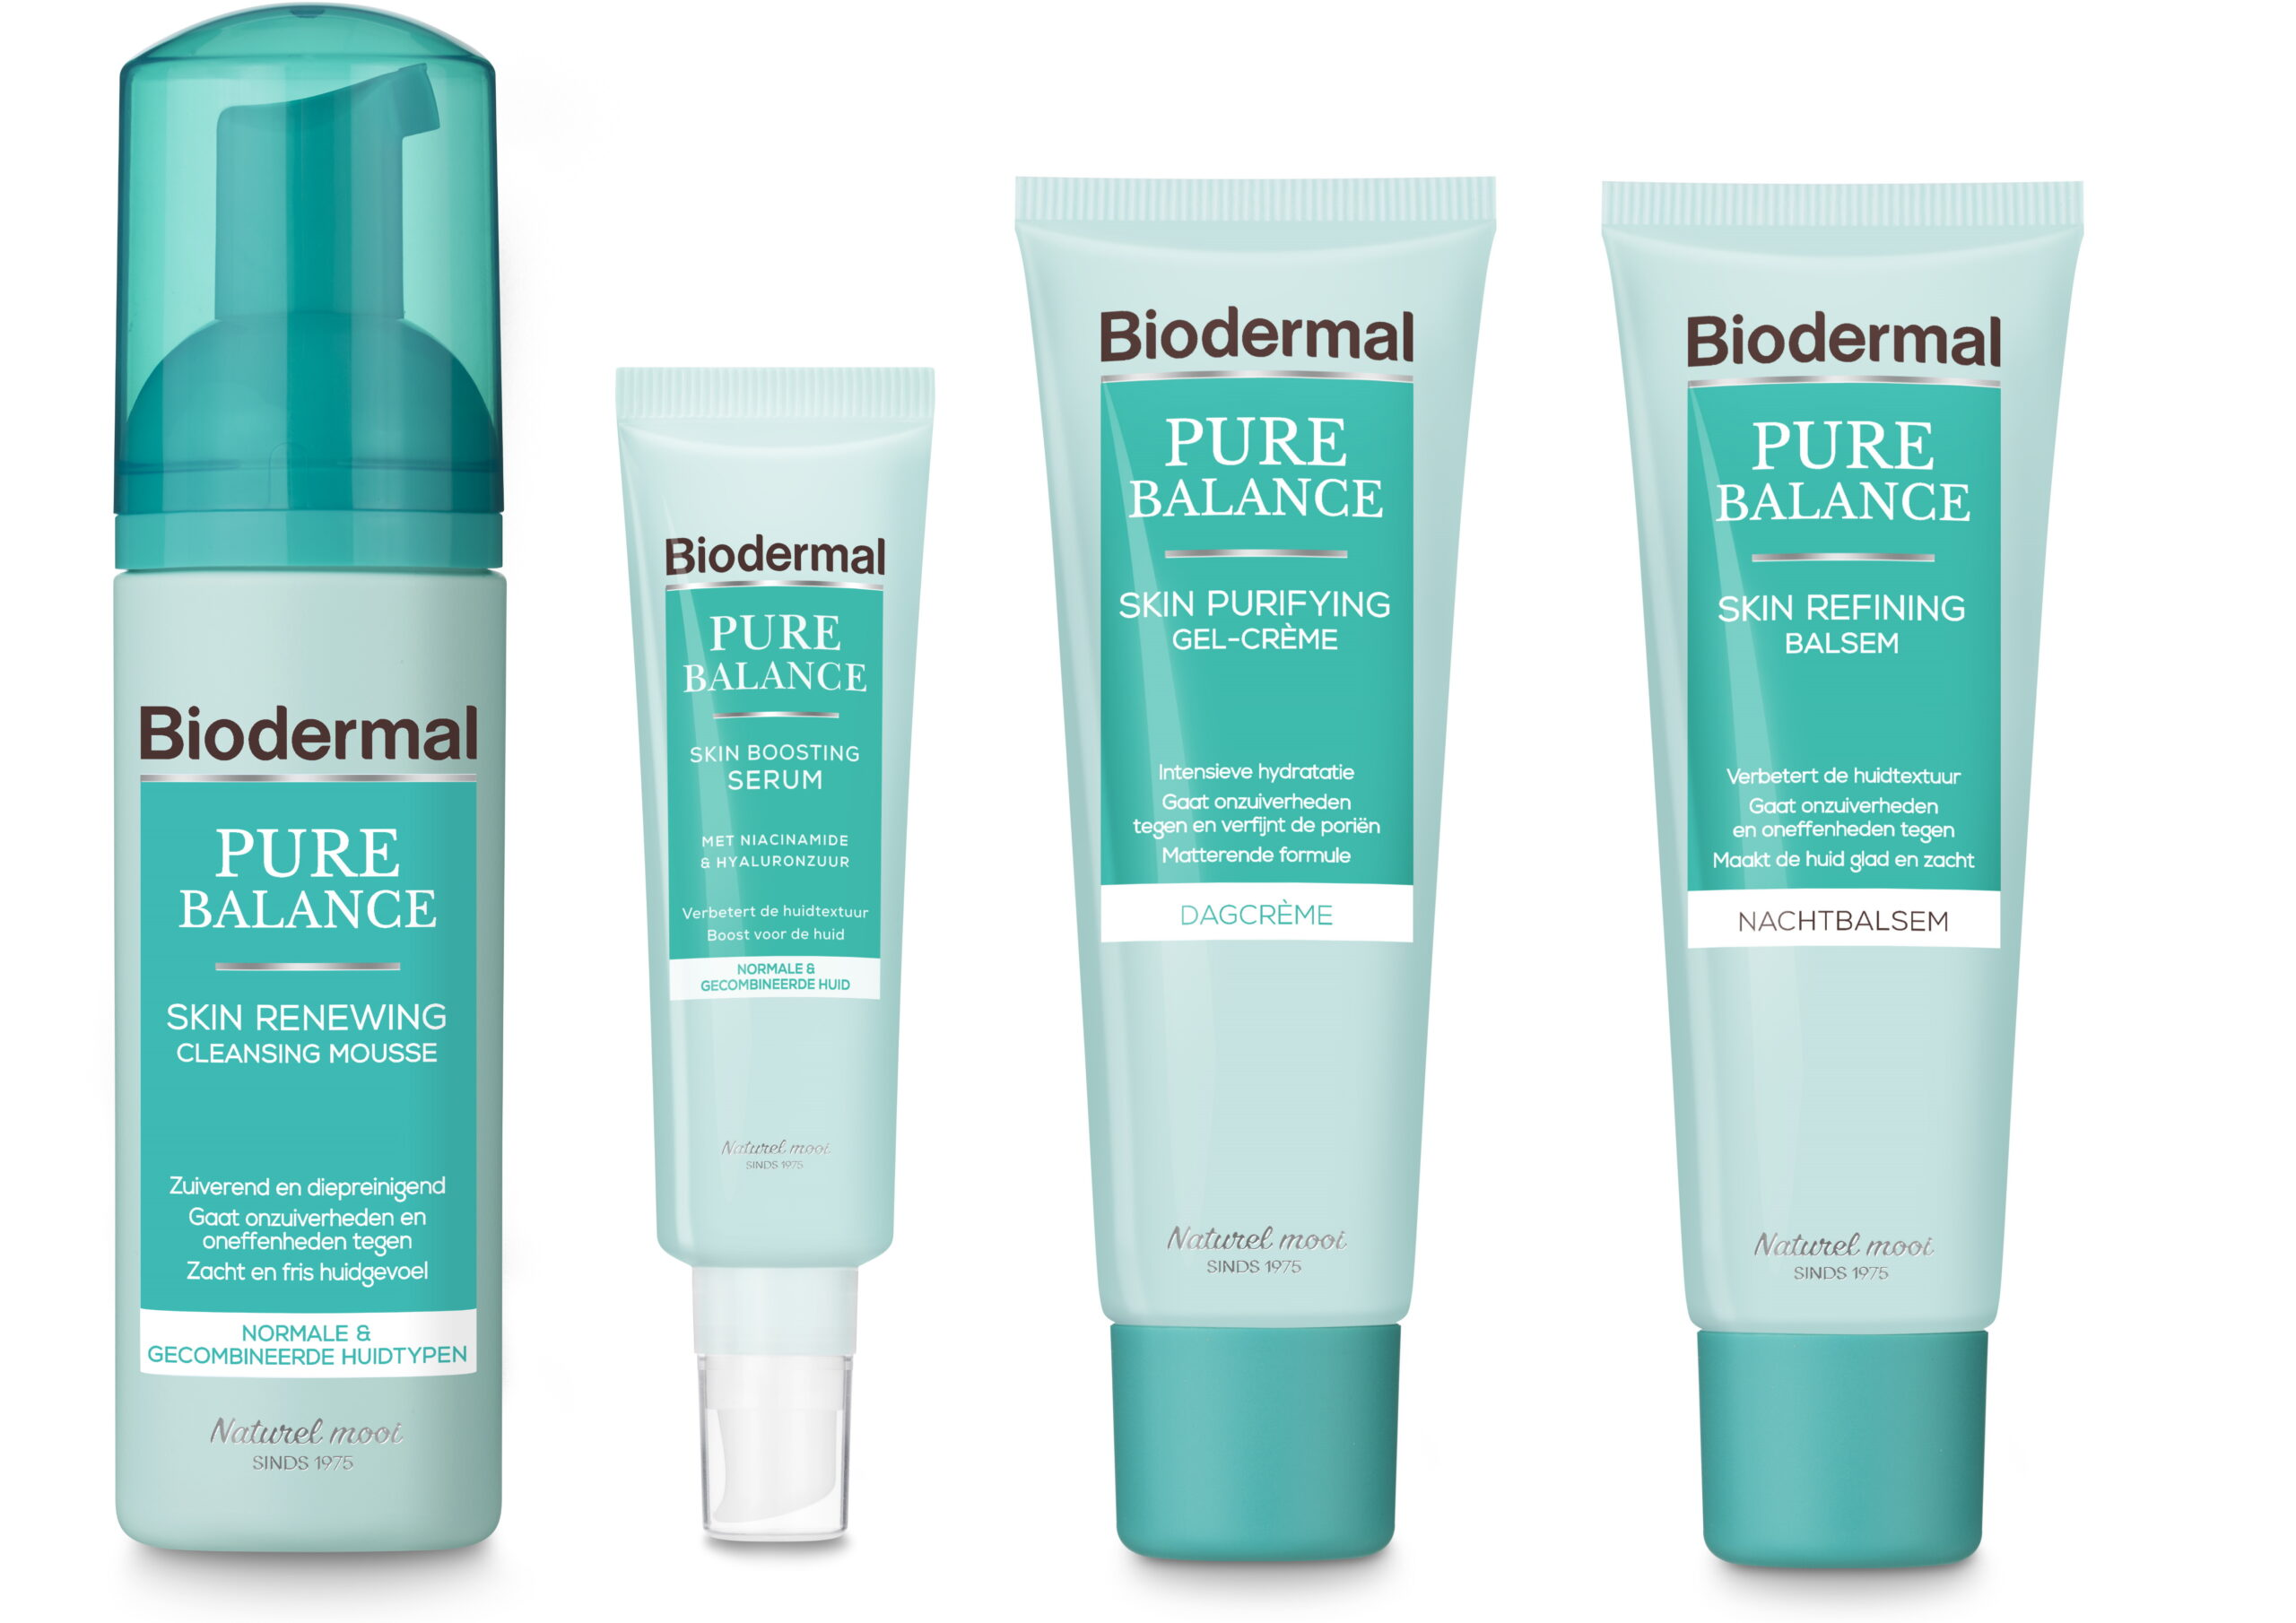 Biodermal Pure Balance productlijn